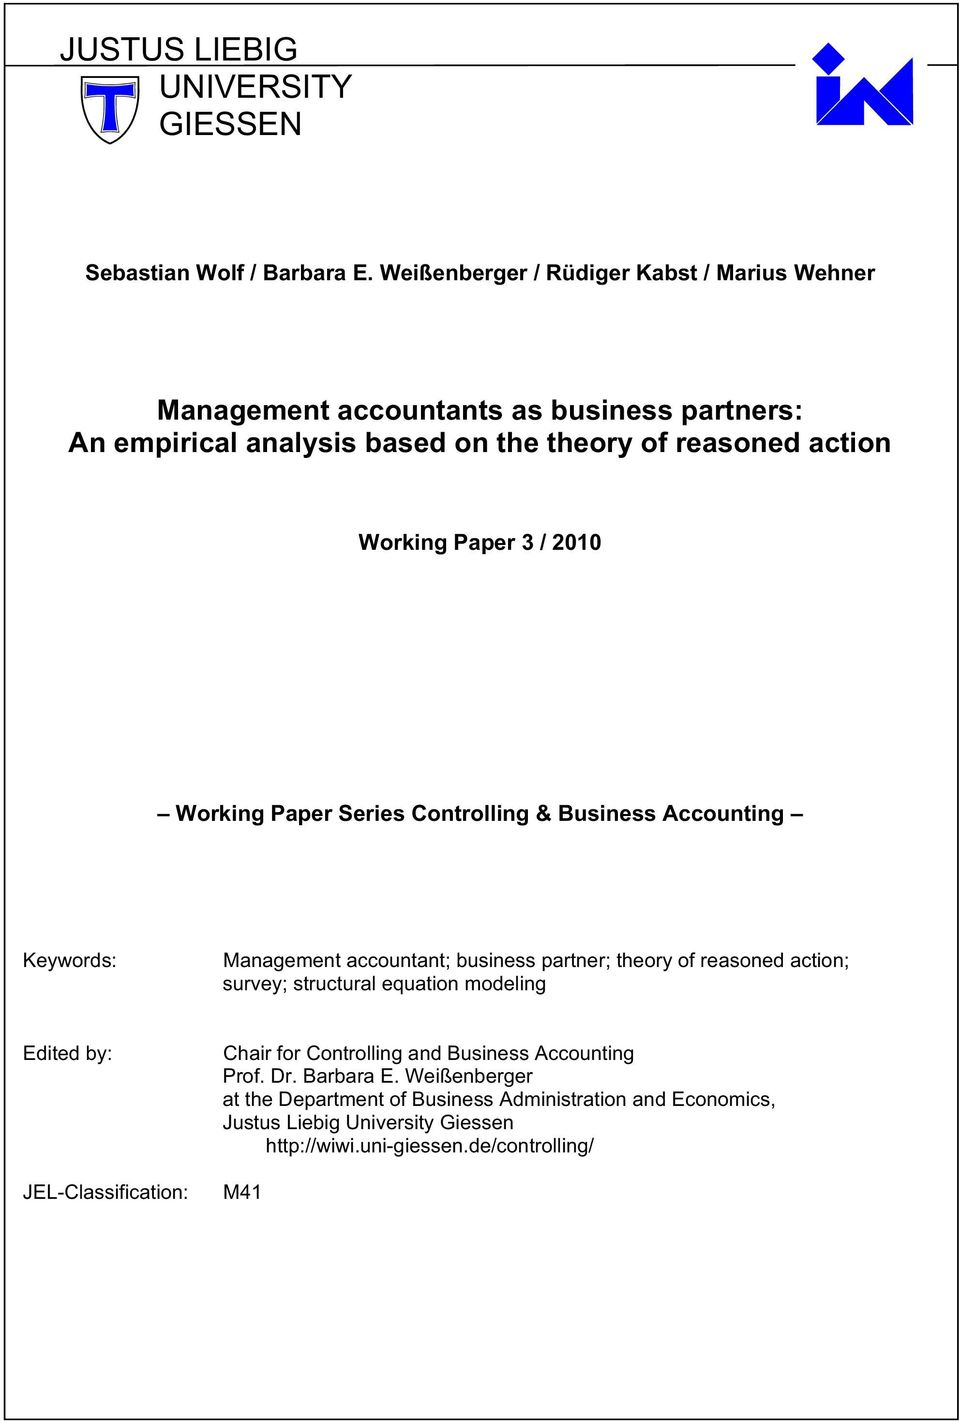 Paper 3 / 2010 Working Paper Series Controlling & Business Accounting Keywords: Management accountant; business partner; theory of reasoned action; survey;